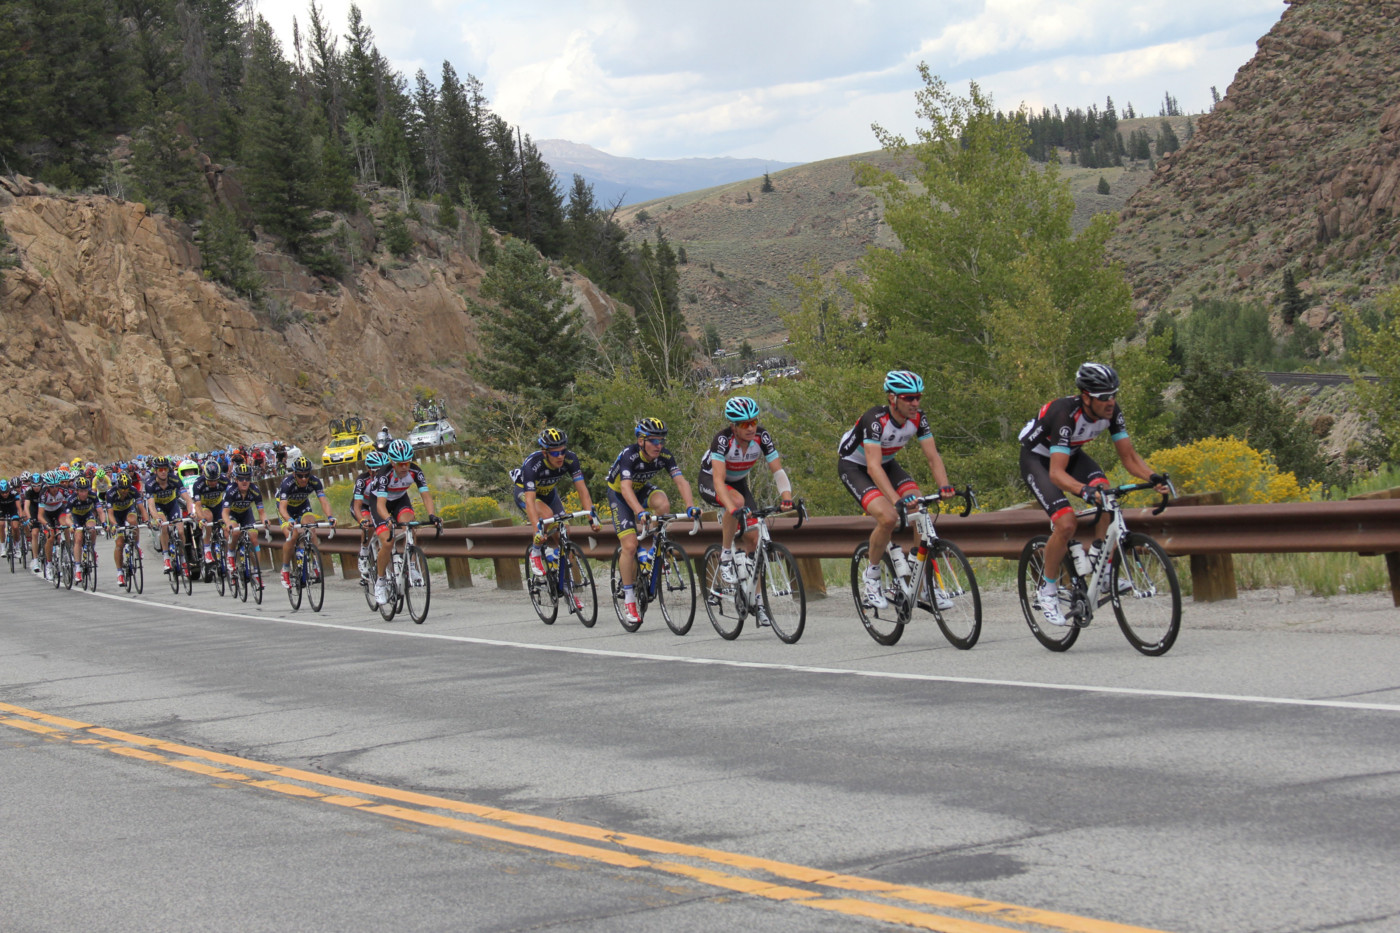 Professional cyclists coming up a mountain road incline/Colorado Classic